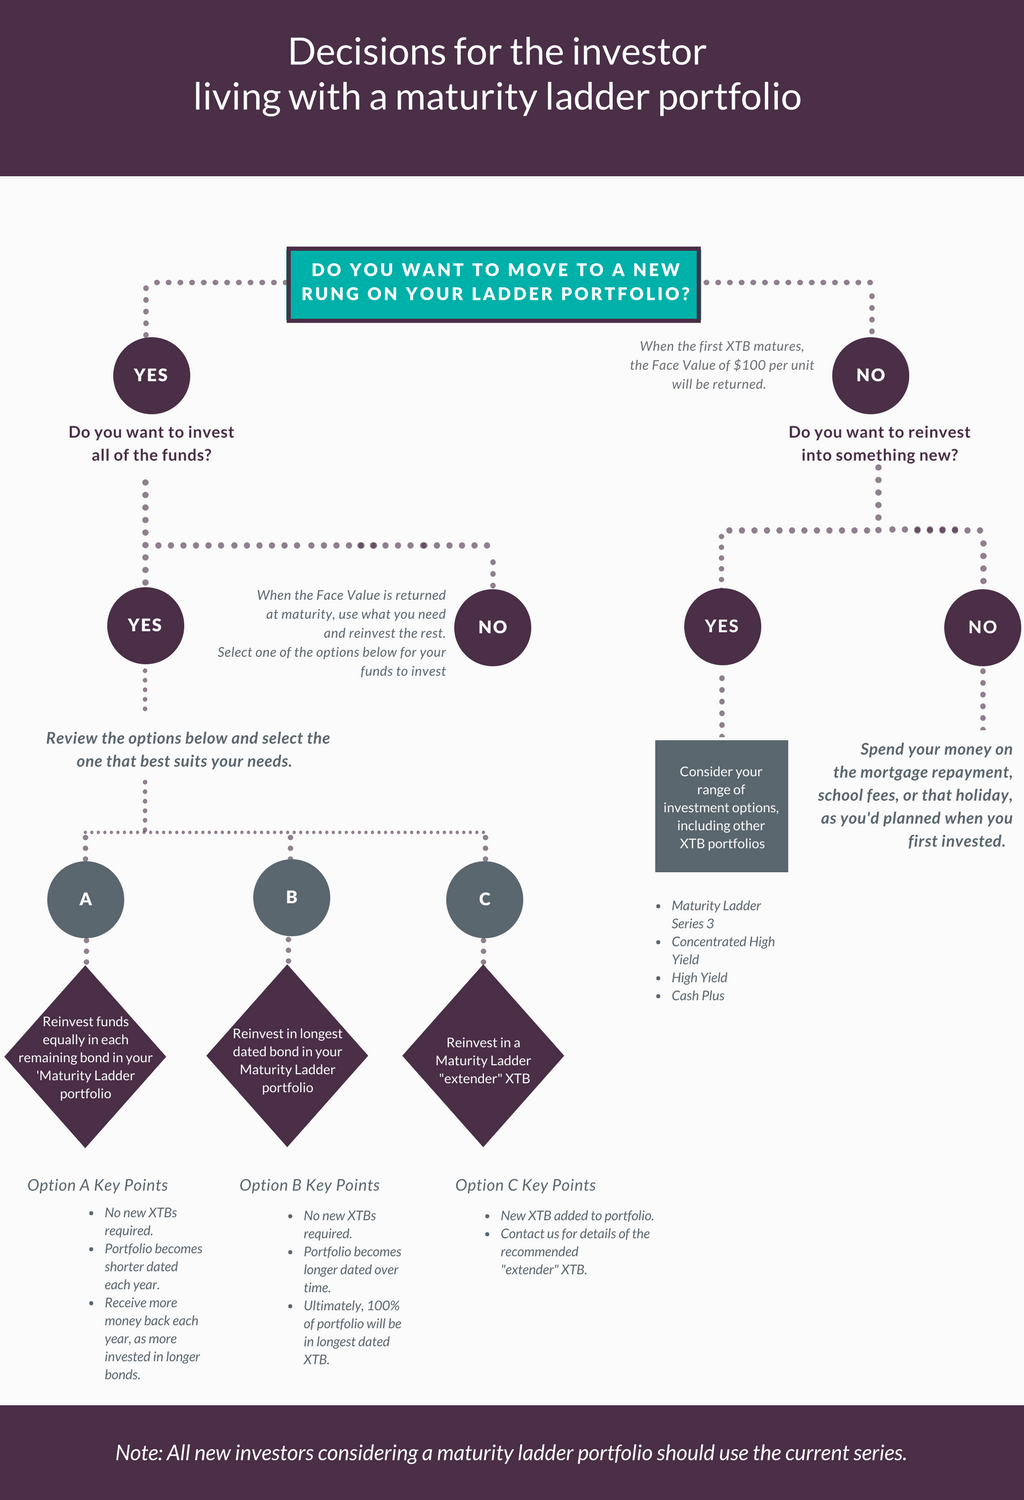 Decision tree for investors living with a maturity ladder portfolio